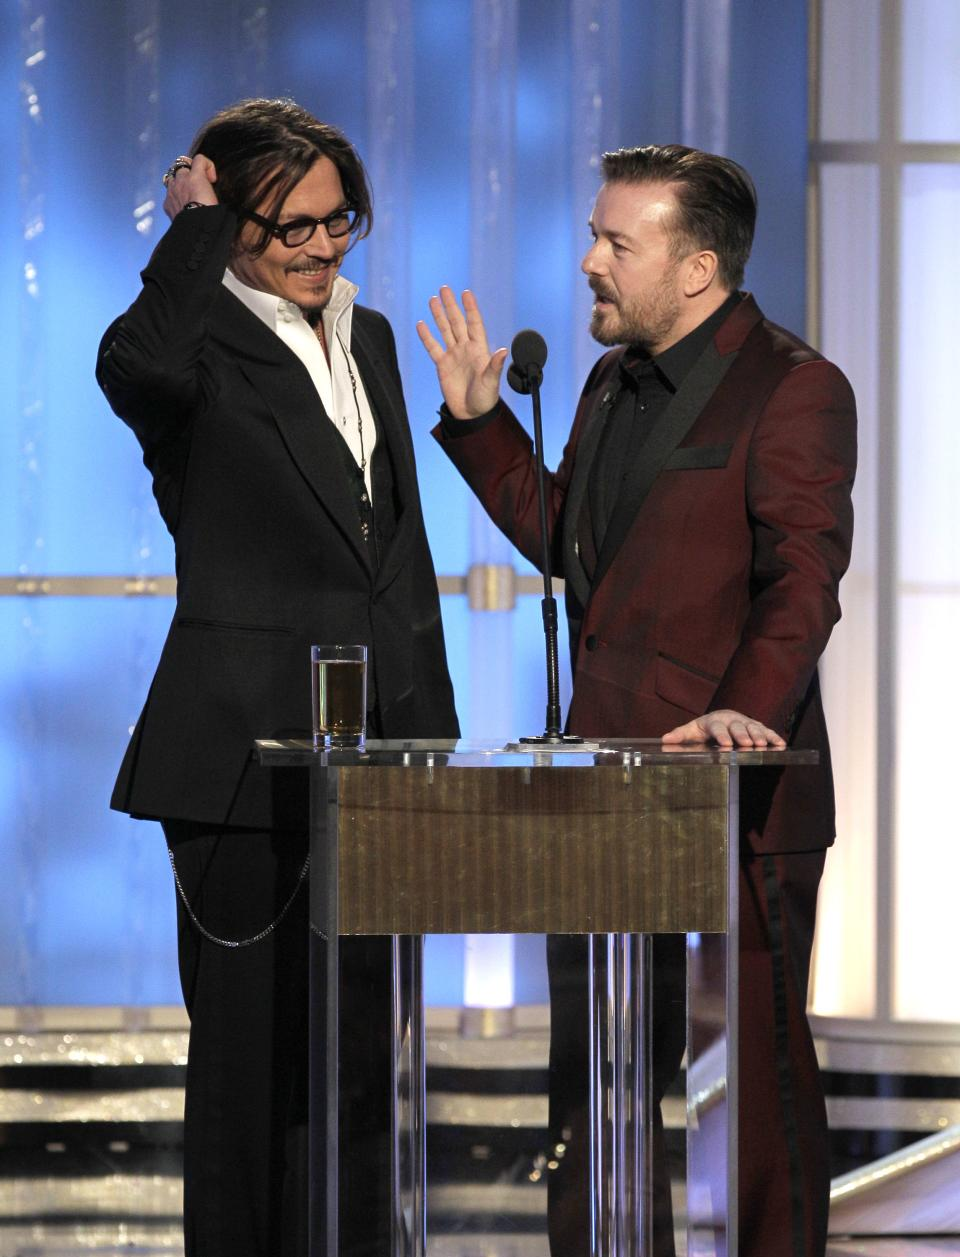 In this image released by NBC, presenter Johnny Depp, left, and host Ricky Gervais are shown during the 69th Annual Golden Globe Awards on Sunday, Jan. 15, 2012 in Los Angeles. (AP Photo/NBC, Paul Drinkwater)